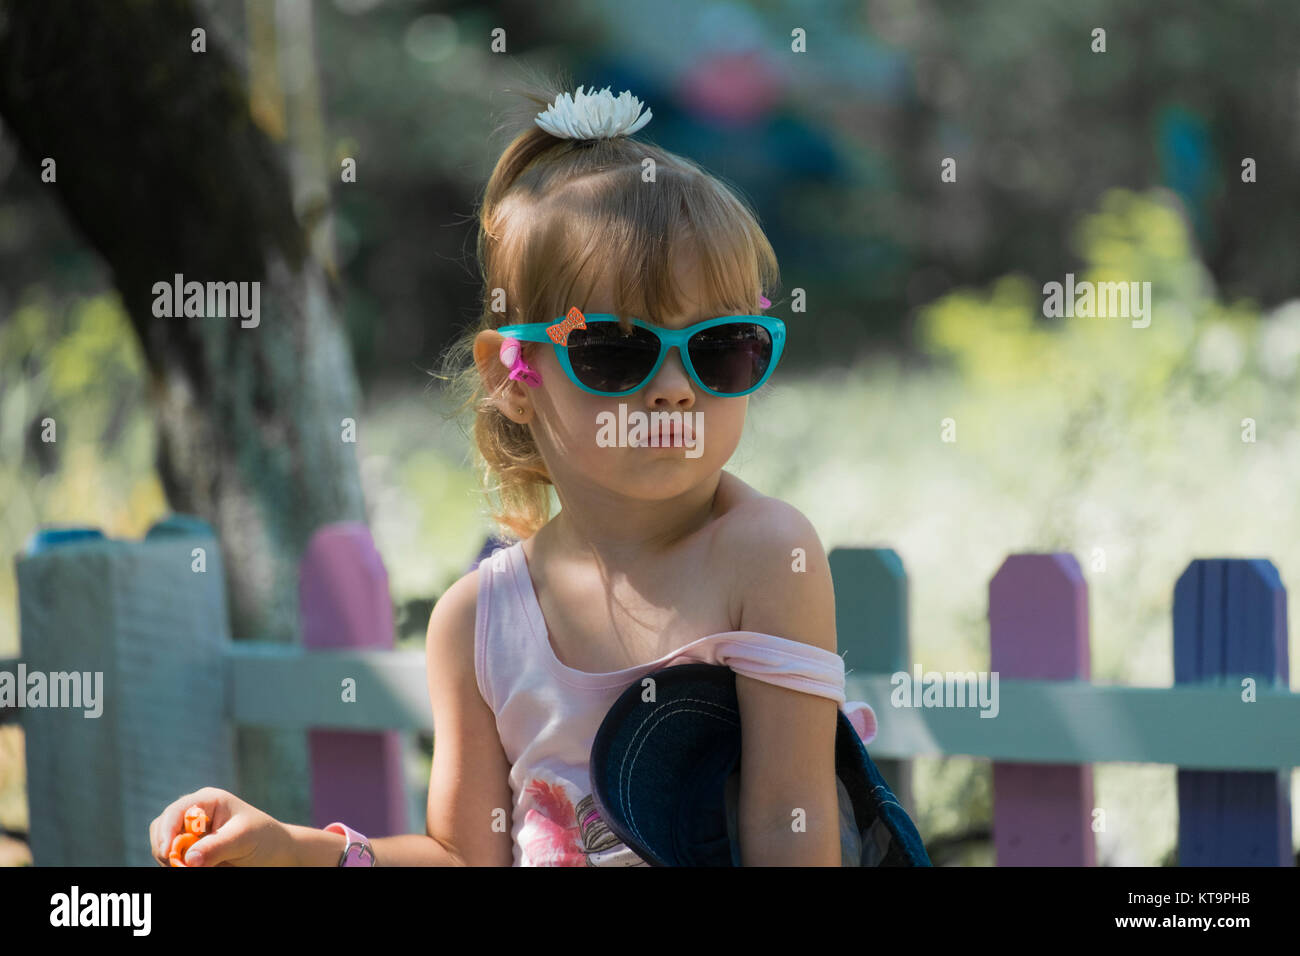 A small fashionista in the glasses with her bare shoulder looking into the distance - Stock Image